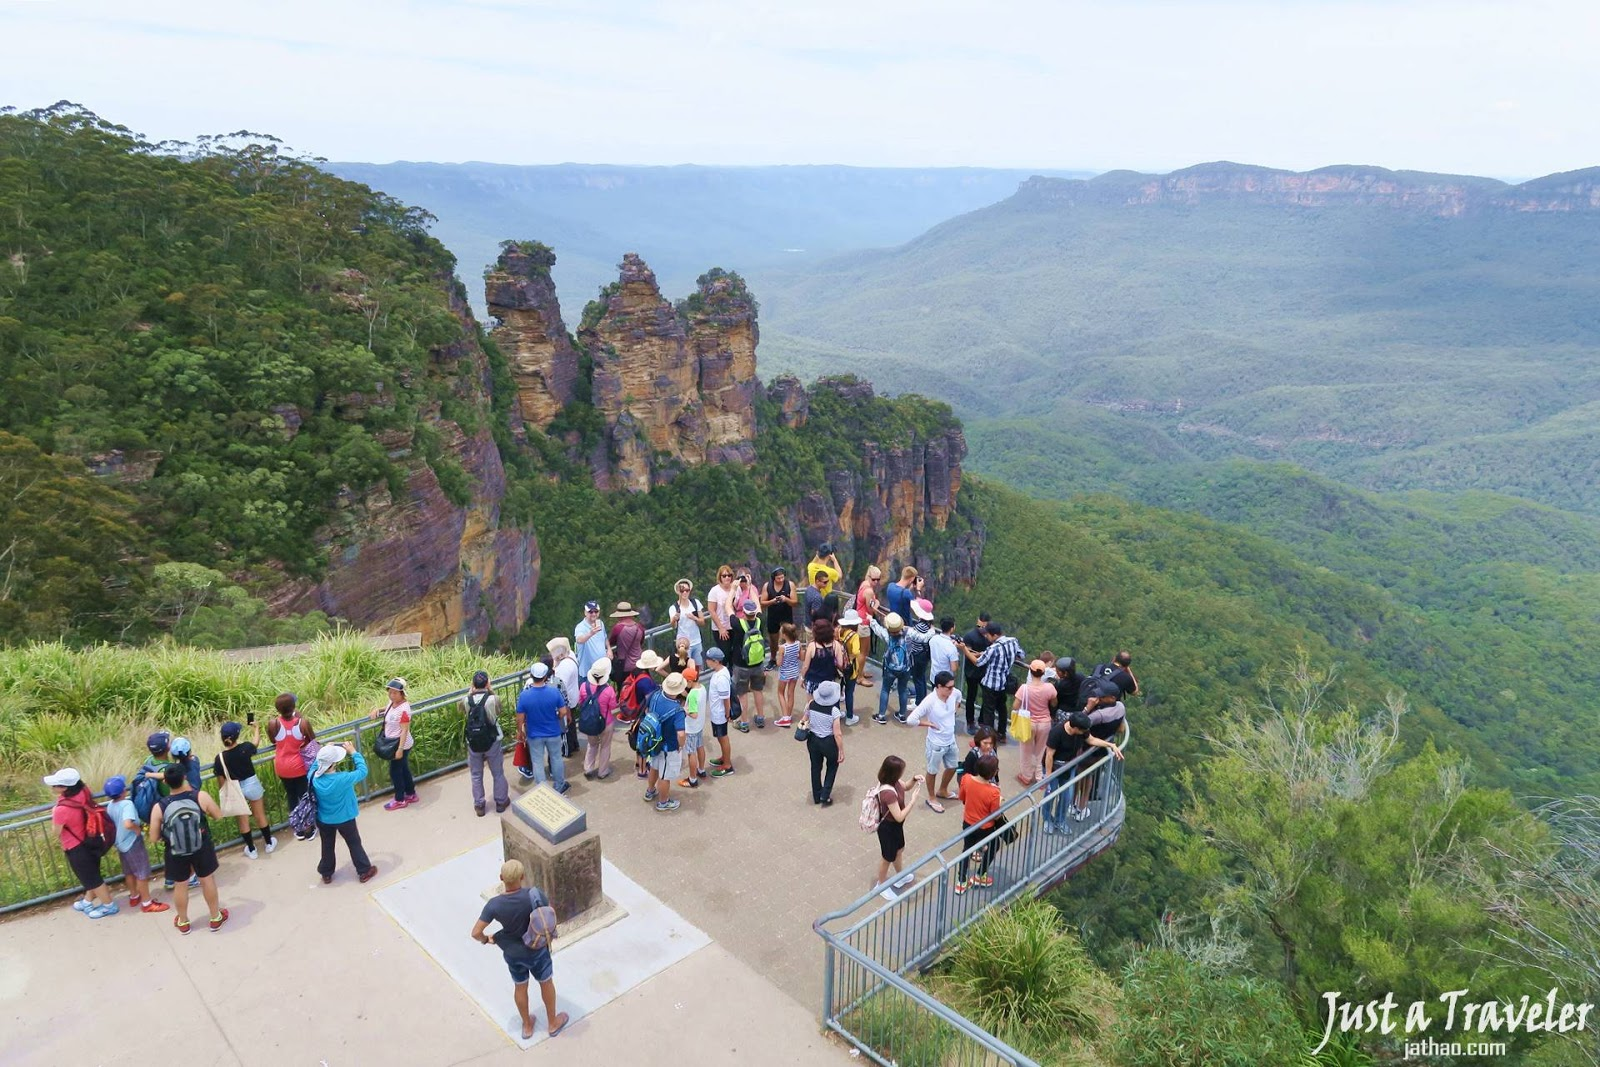 雪梨-景點-藍山-三姊妹岩-澳洲藍山-Sydney-Blue-Mountains-Three-Sisters-Tourist-Attraction-Australia